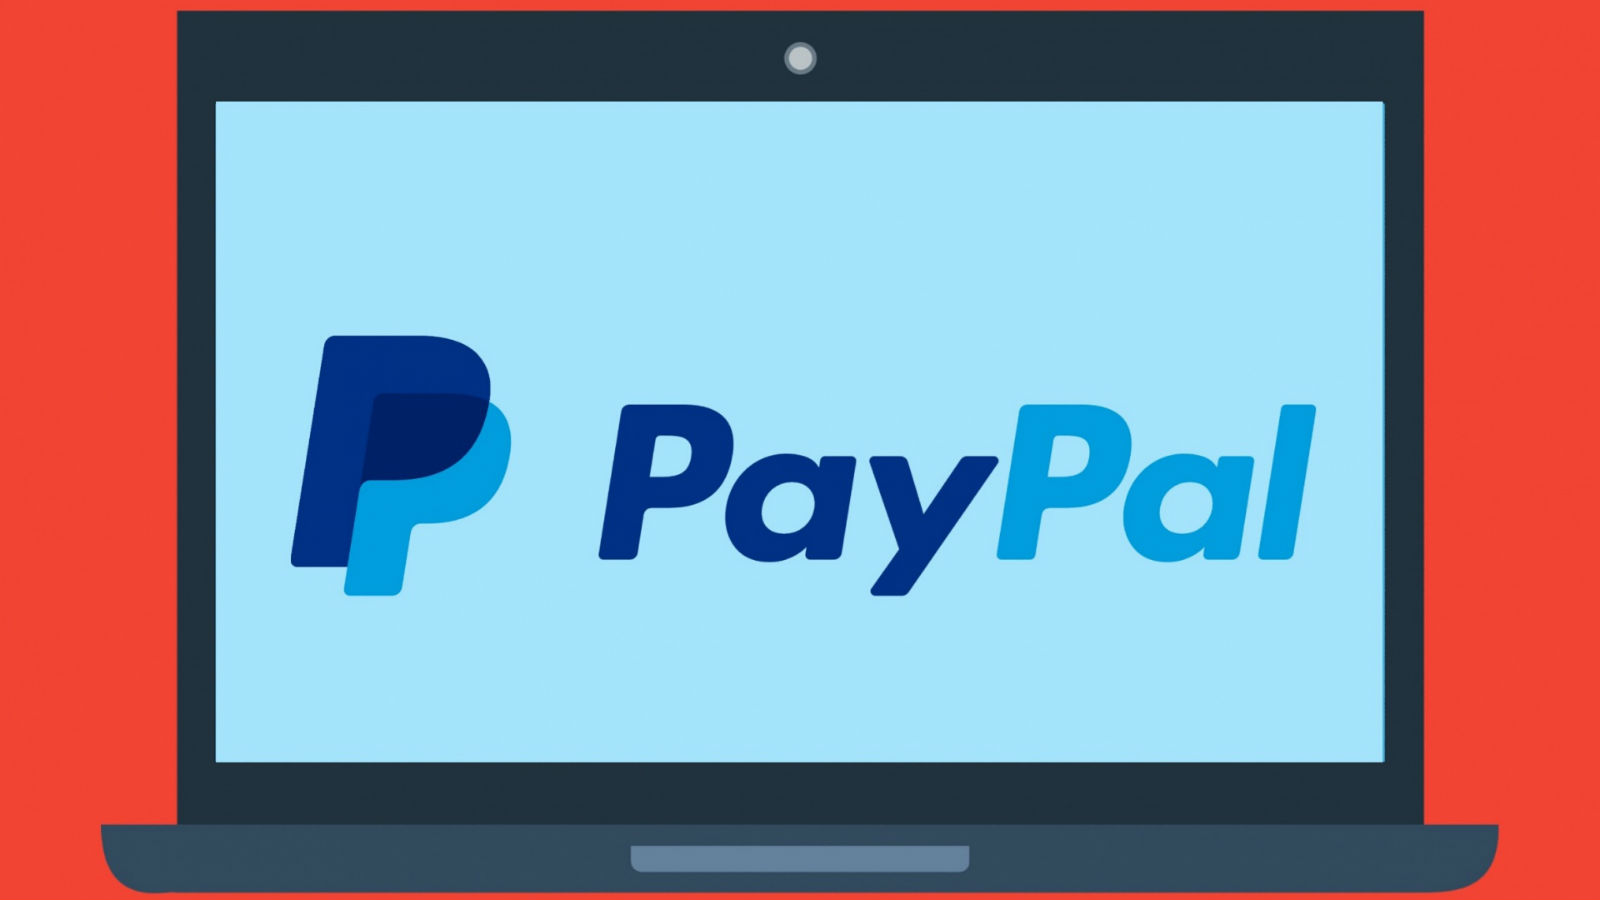 What betting sites use paypal us open golf betting games for two